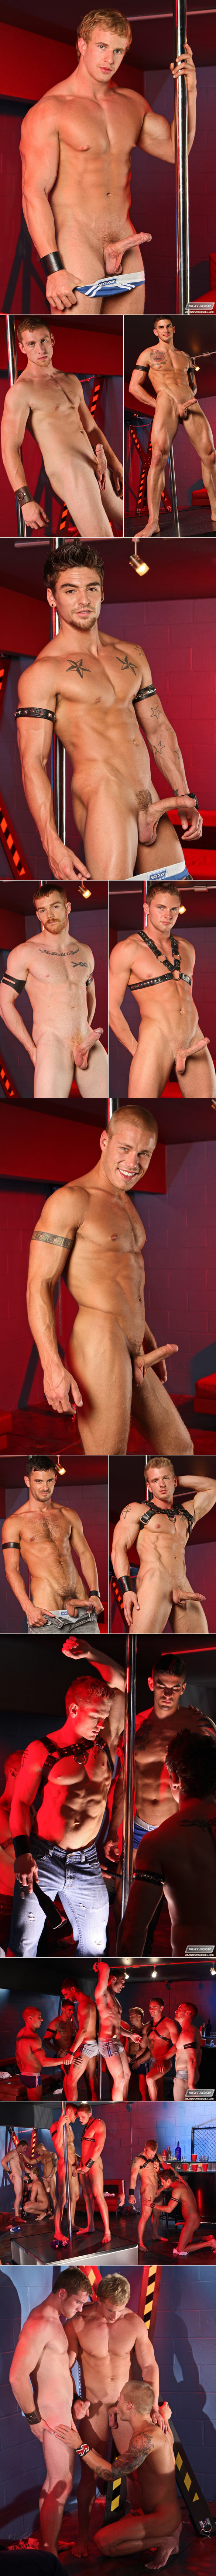 "NextDoorBuddies' ""The Dungeon Club"" orgy"